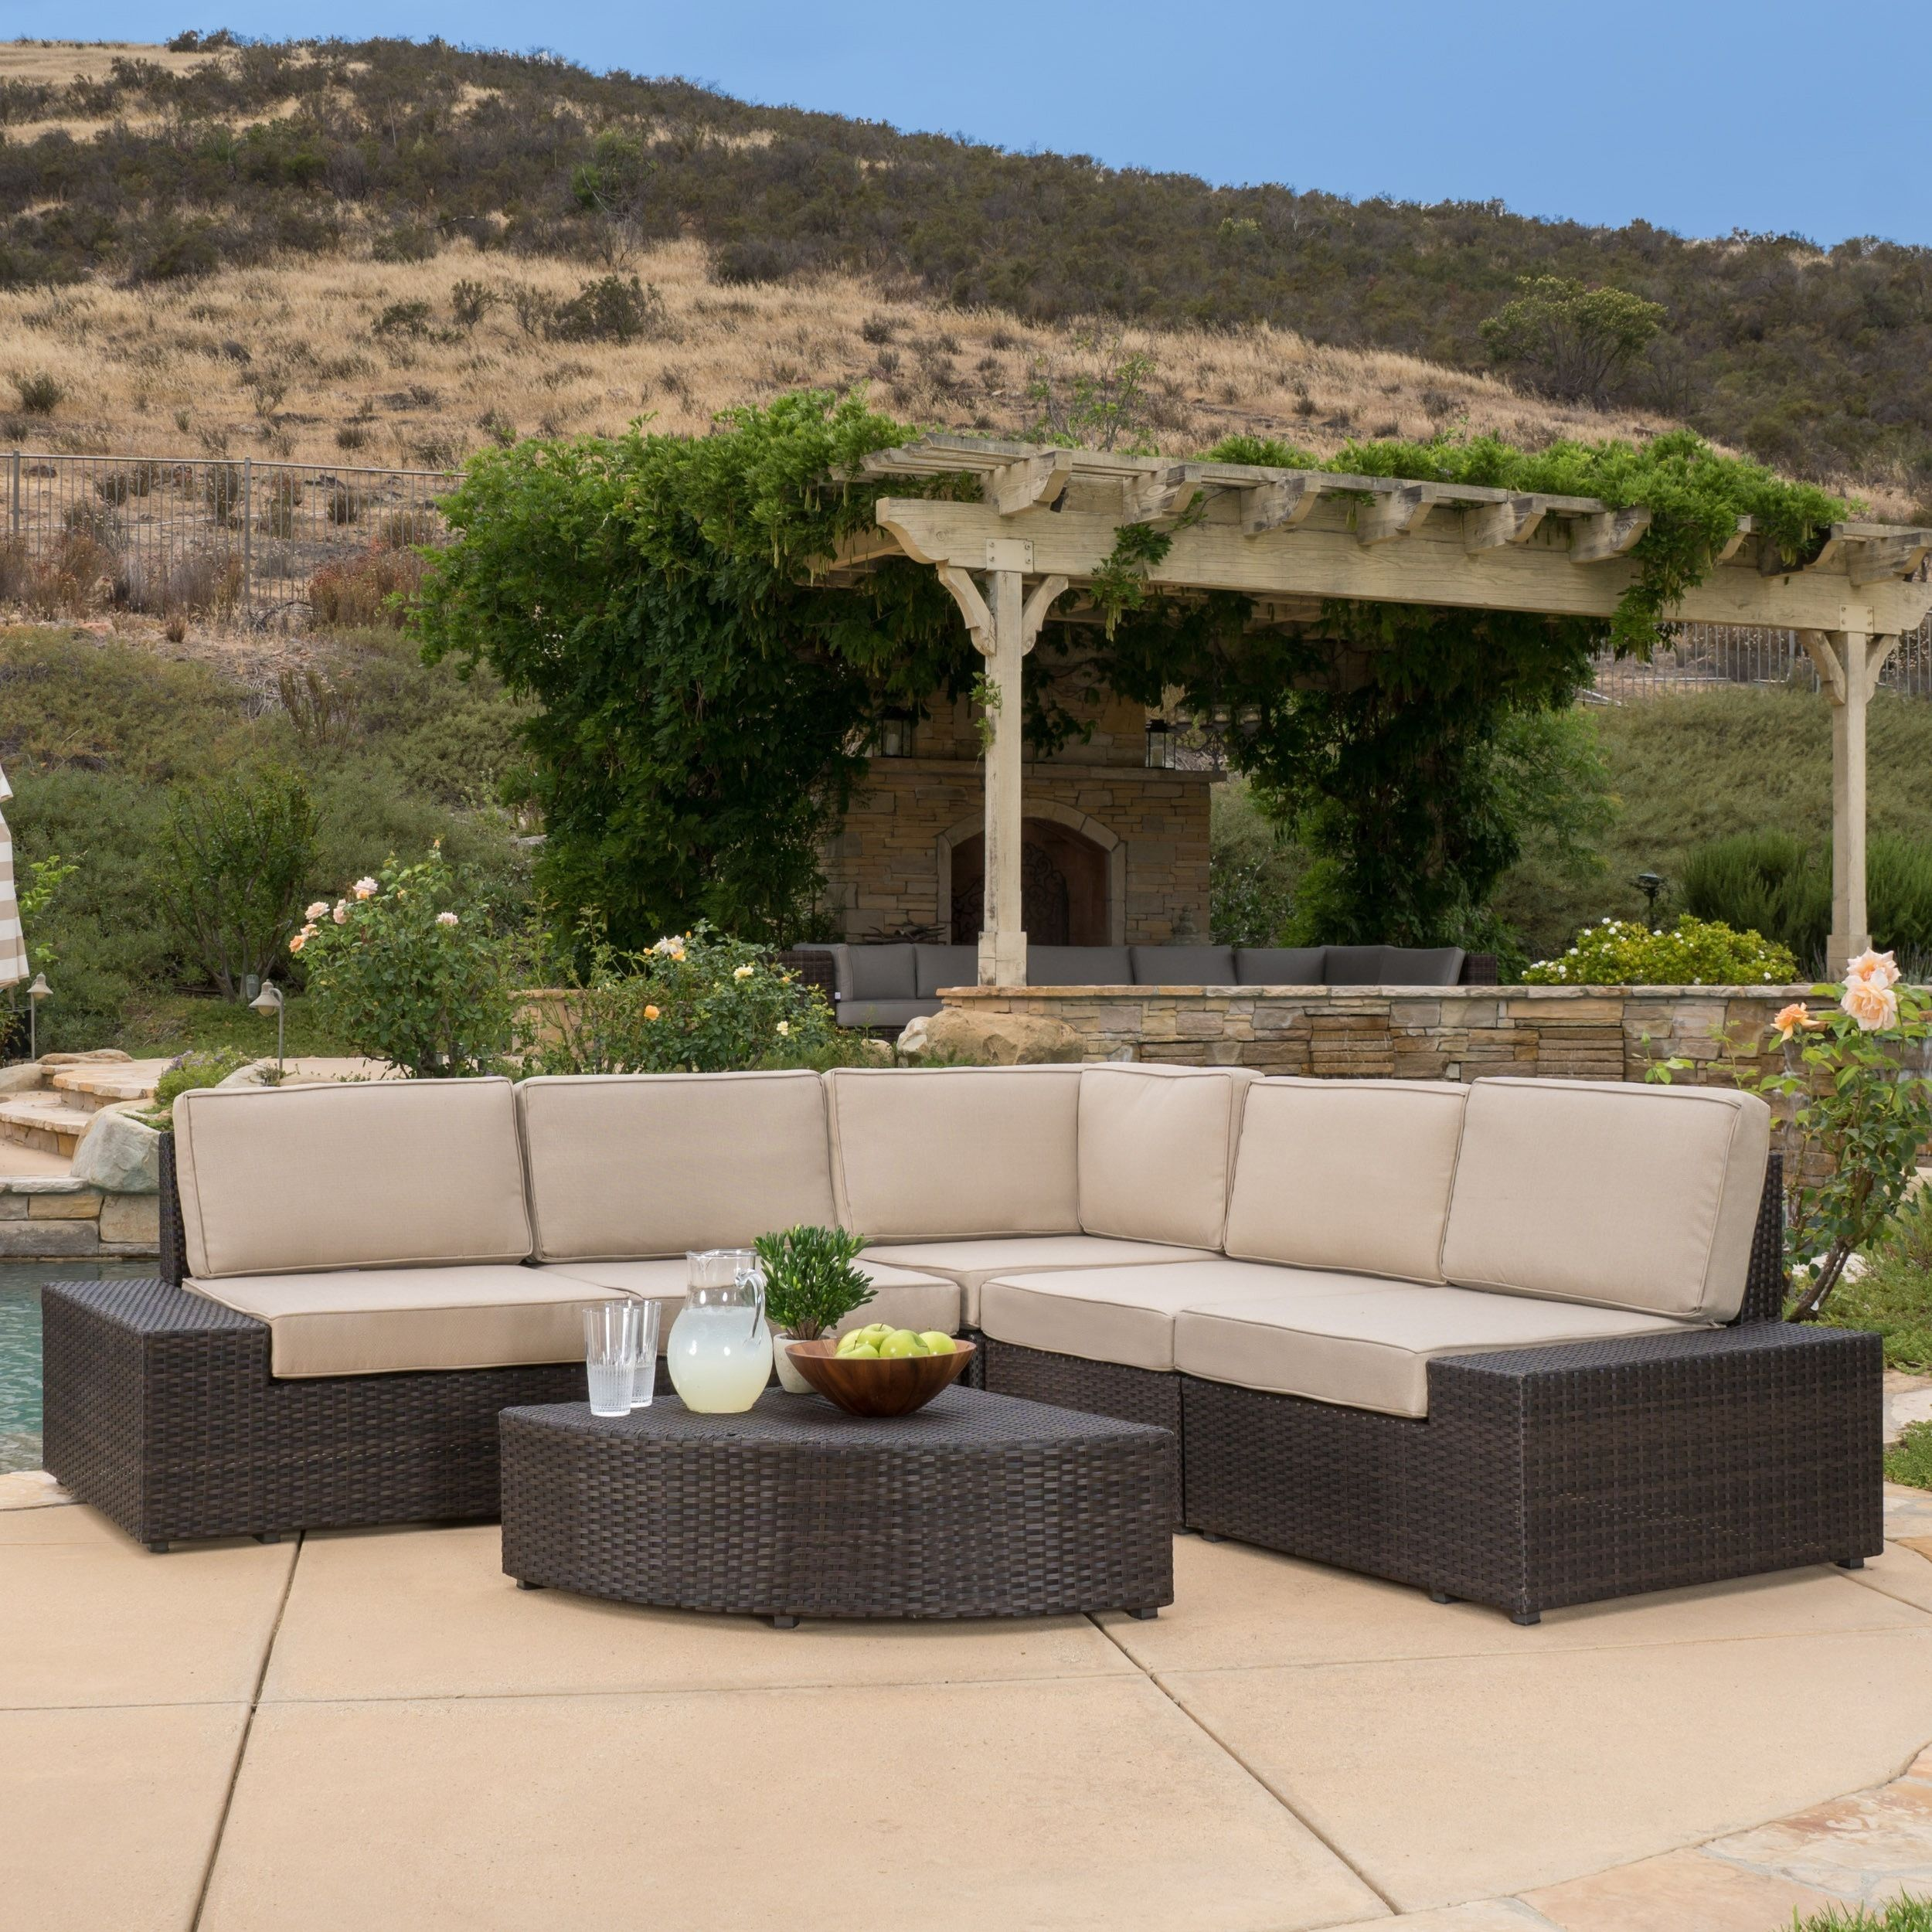 outdoor design skyline galaxy vegas las nevada furniture of ondeck patio